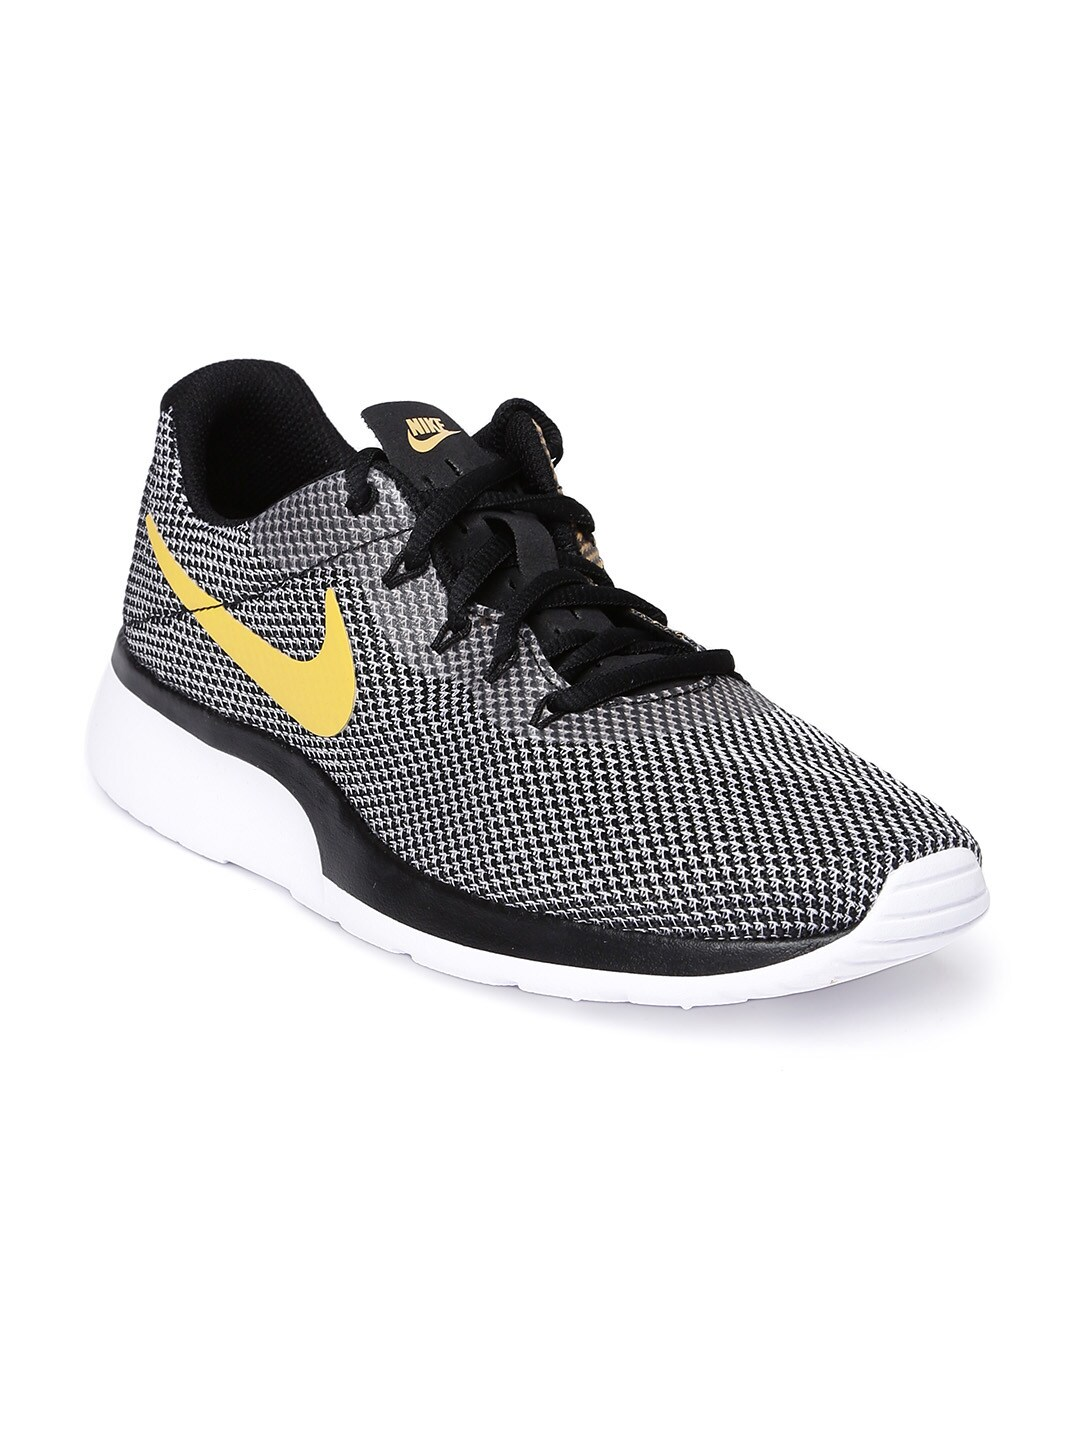 detailed look 7dbab ca938 Nike Casual Shoes   Buy Nike Casual Shoes for Men   Women Online in India